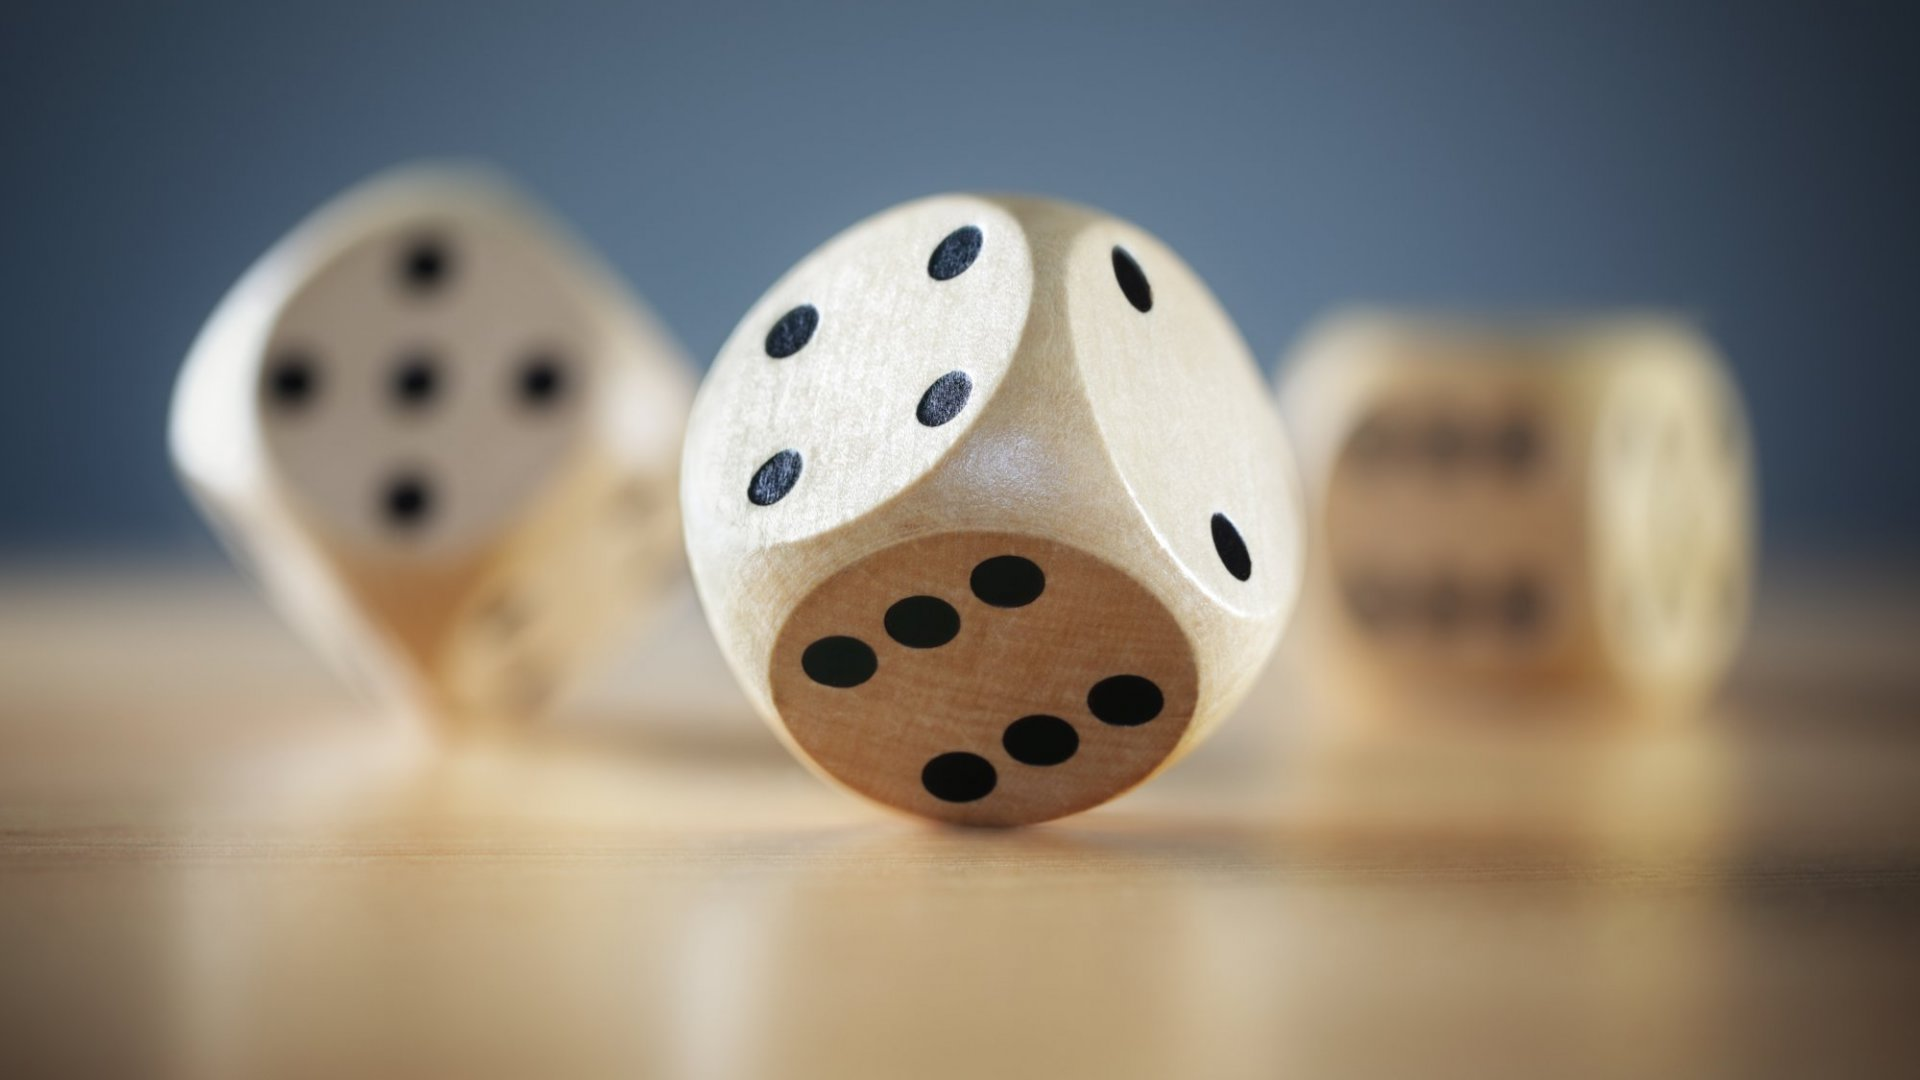 Real business decisions often boil down to the estimated probability of two or more outcomes